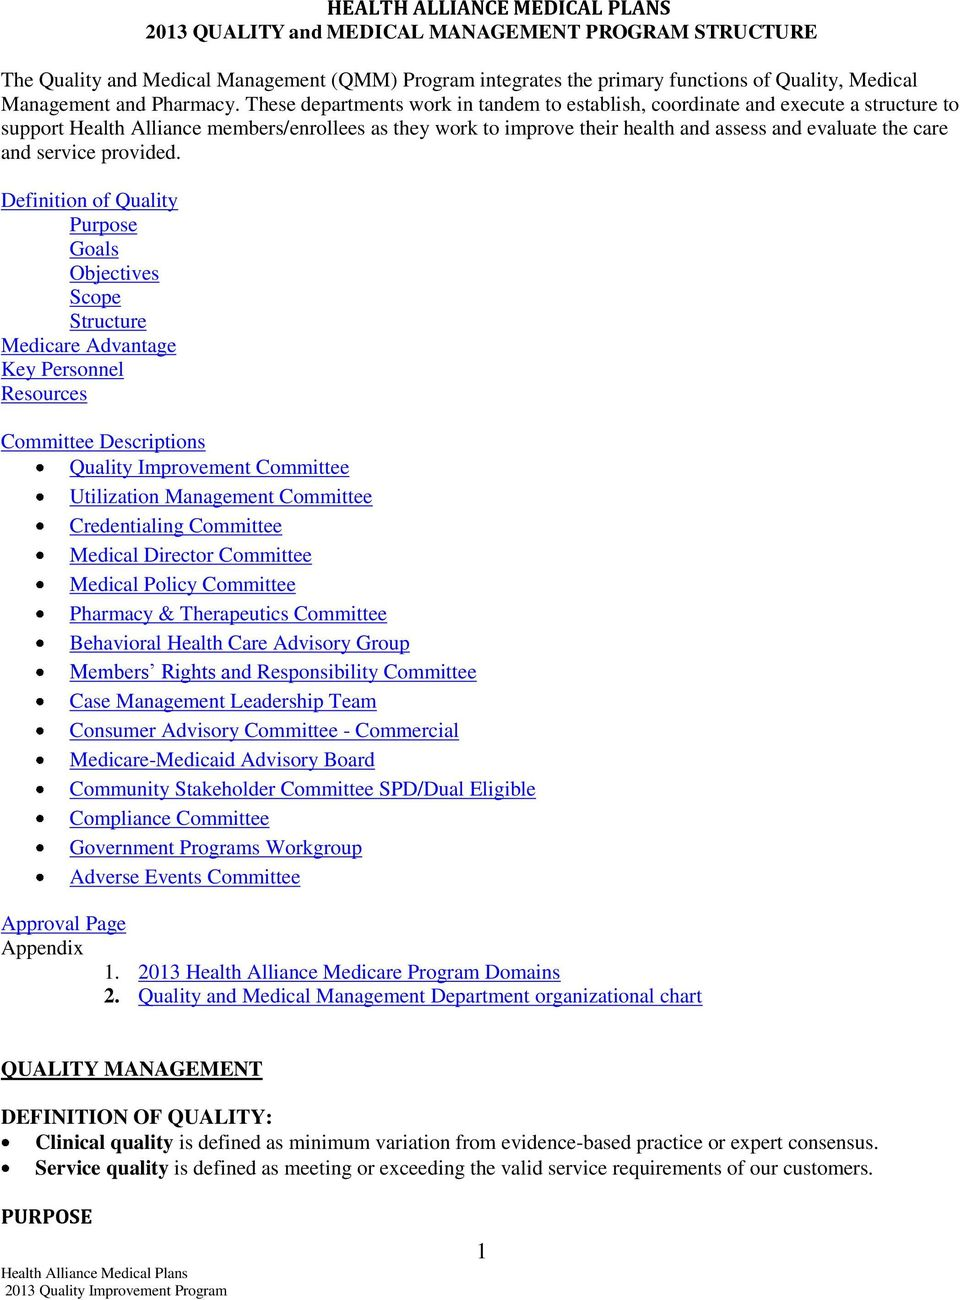 Health Alliance Medical Plans 2013 Quality And Medical Management